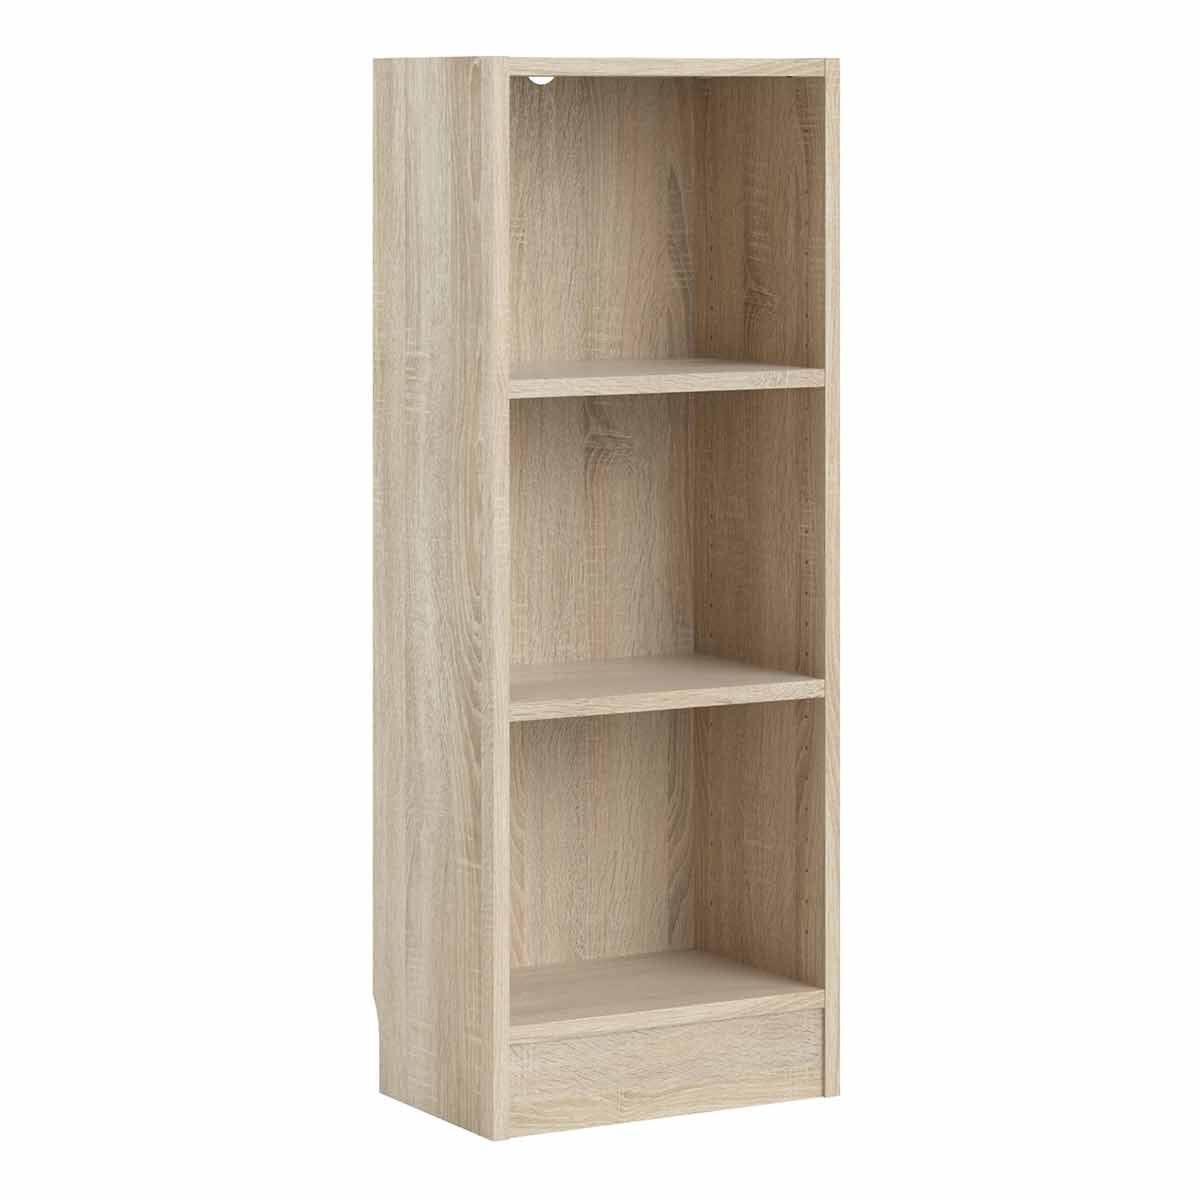 Basic Low Narrow Bookcase with 2 Shelves Oak